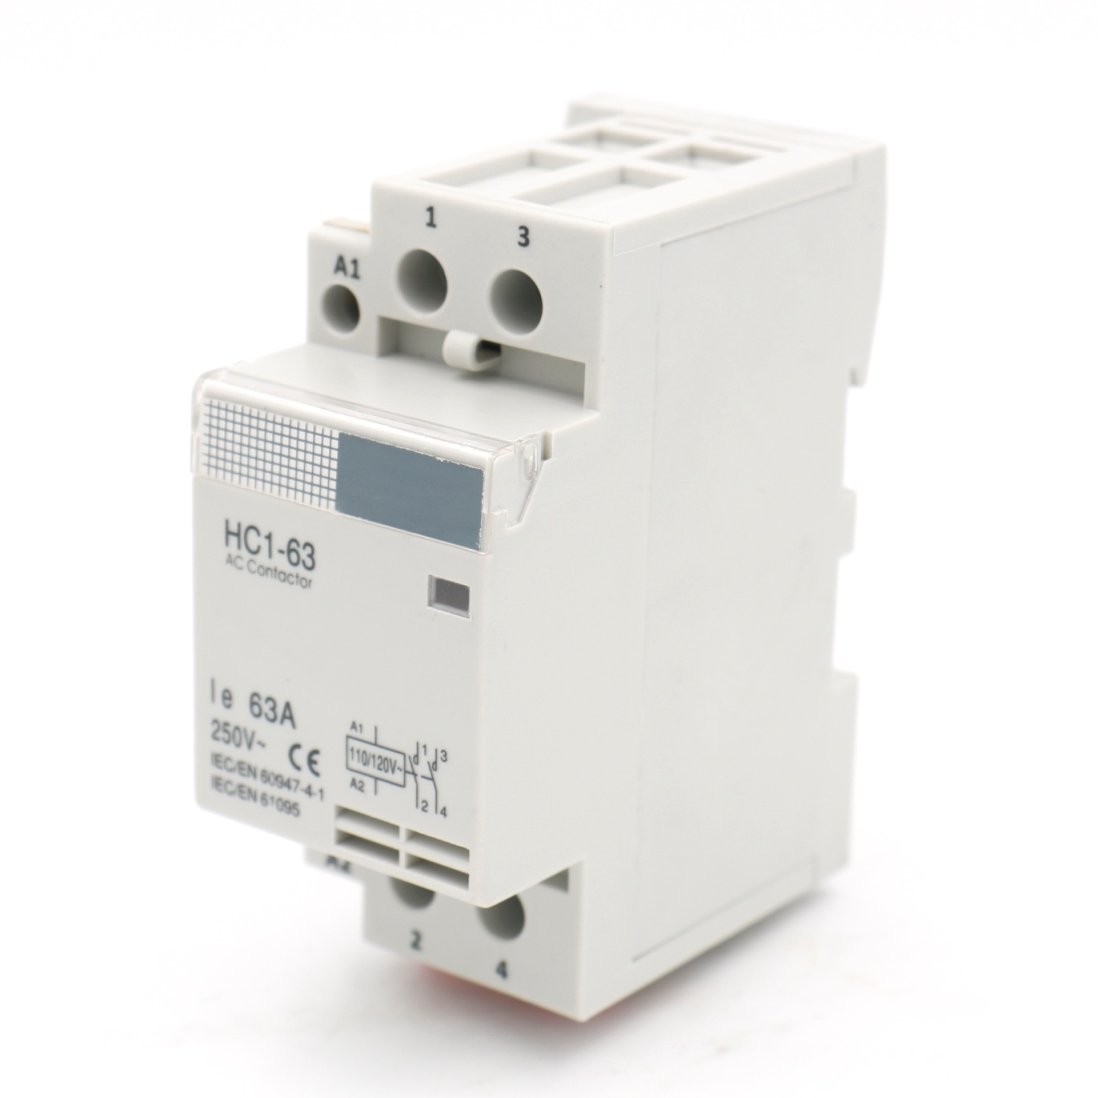 Baomain AC Contactor HC1-63 110V 63A 2 Pole Universal Circuit Control DIN Rail Mount